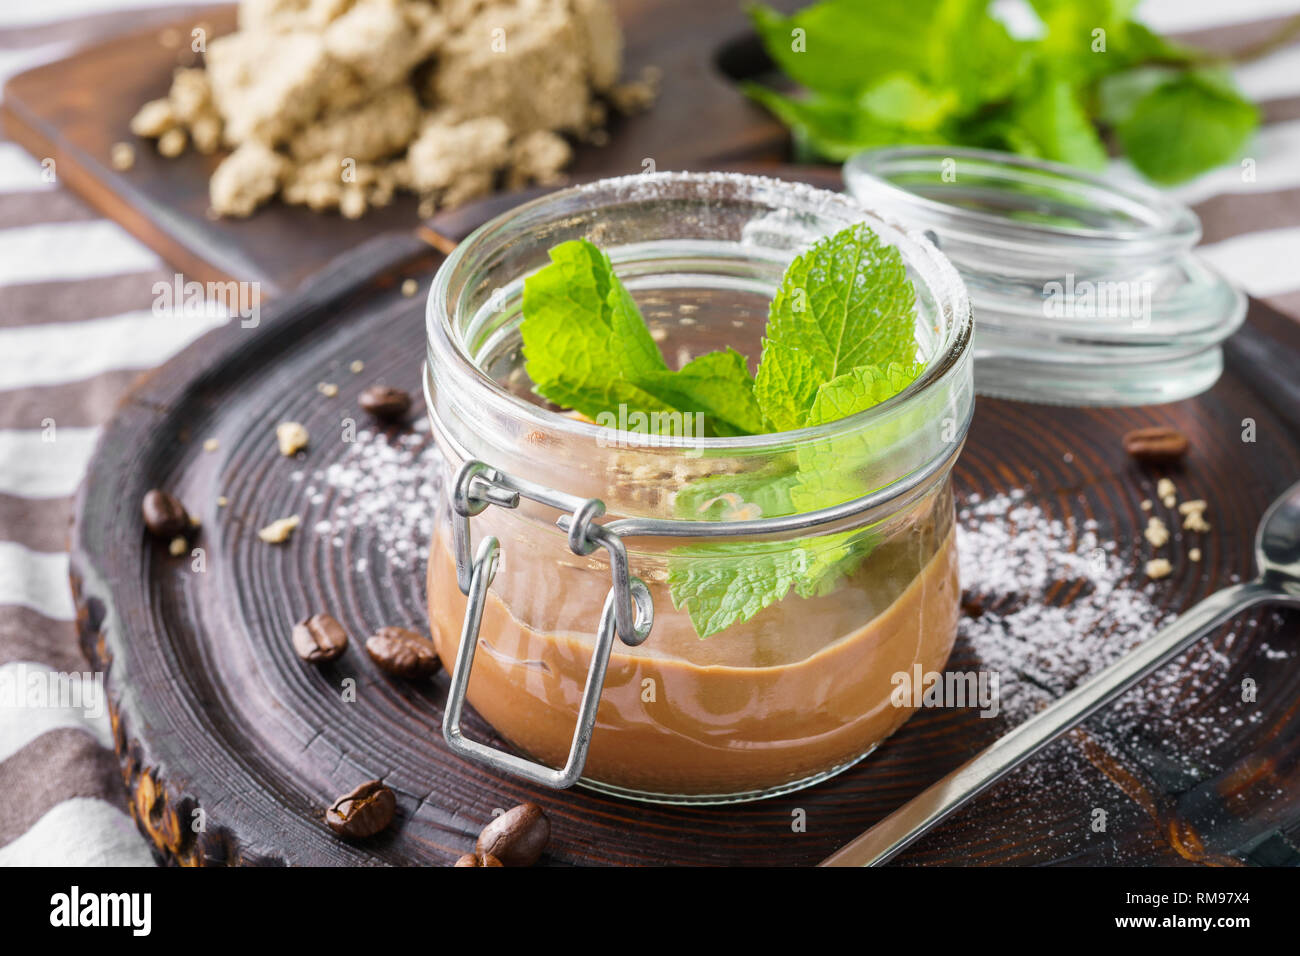 Chocolate pudding with fresh mint in a jar. Healthy vegan dessert concept. - Stock Image